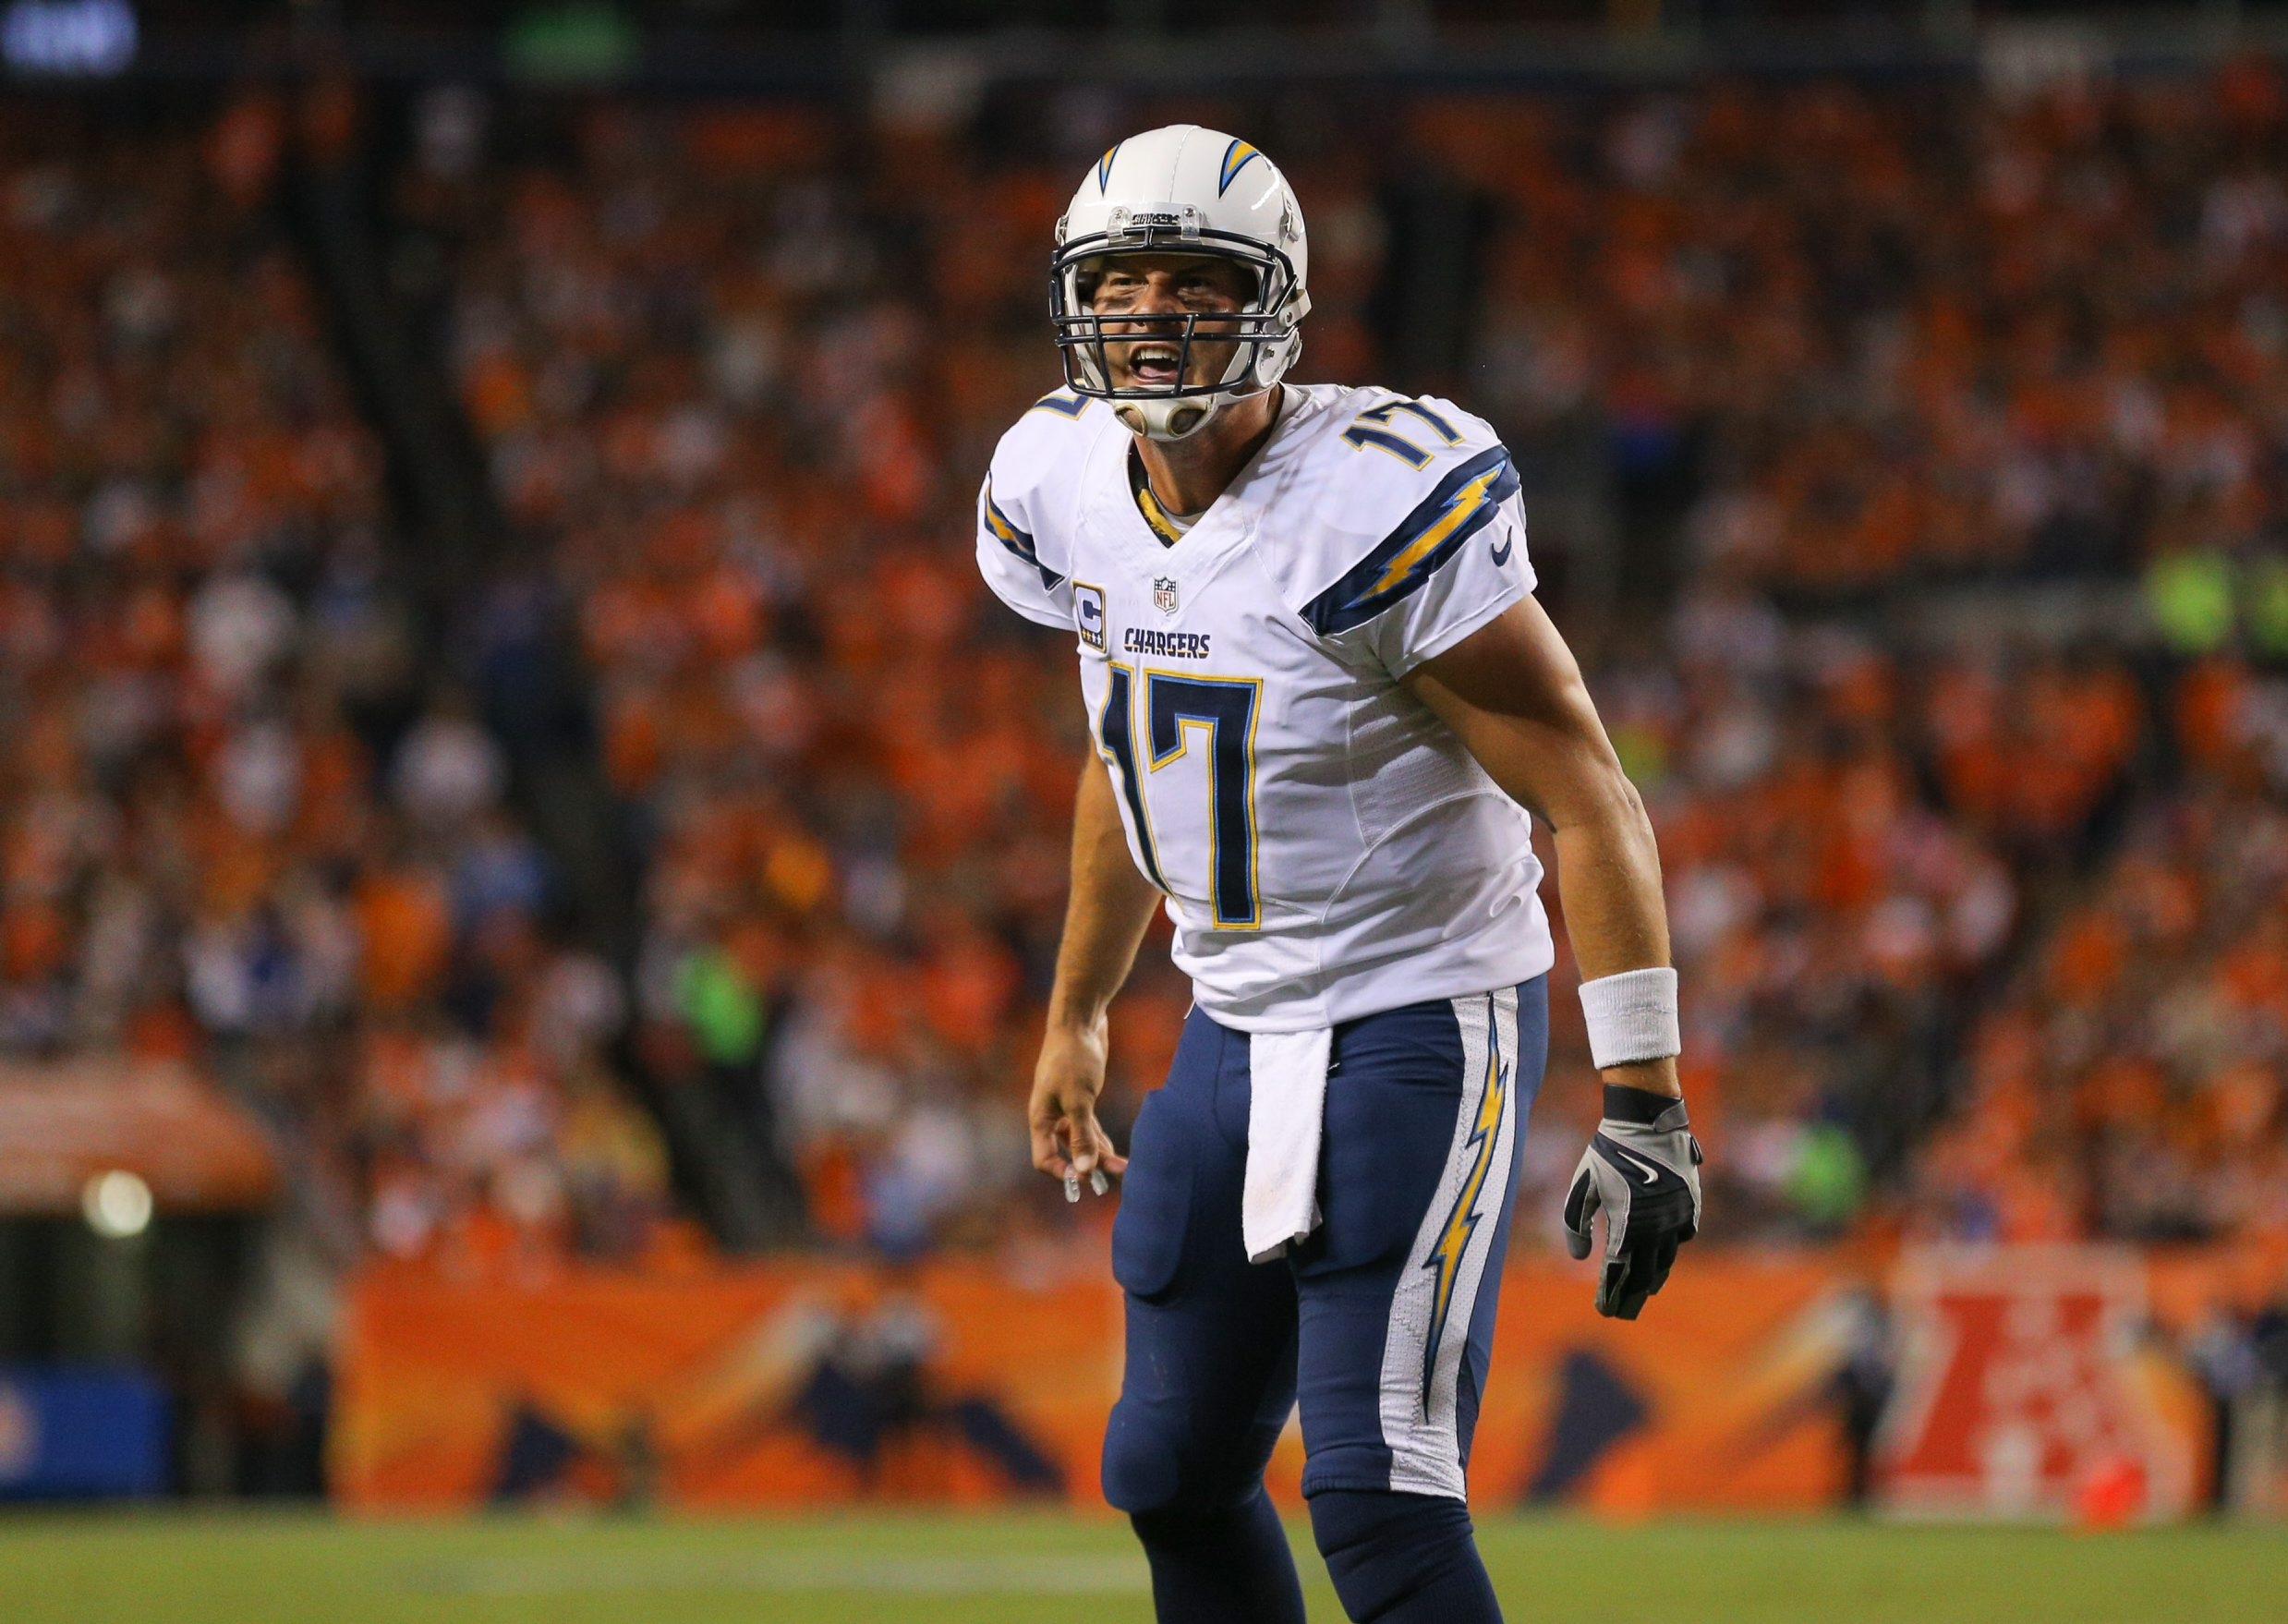 The San Diego Chargers have extended their commitment to quarterback Philip Rivers.